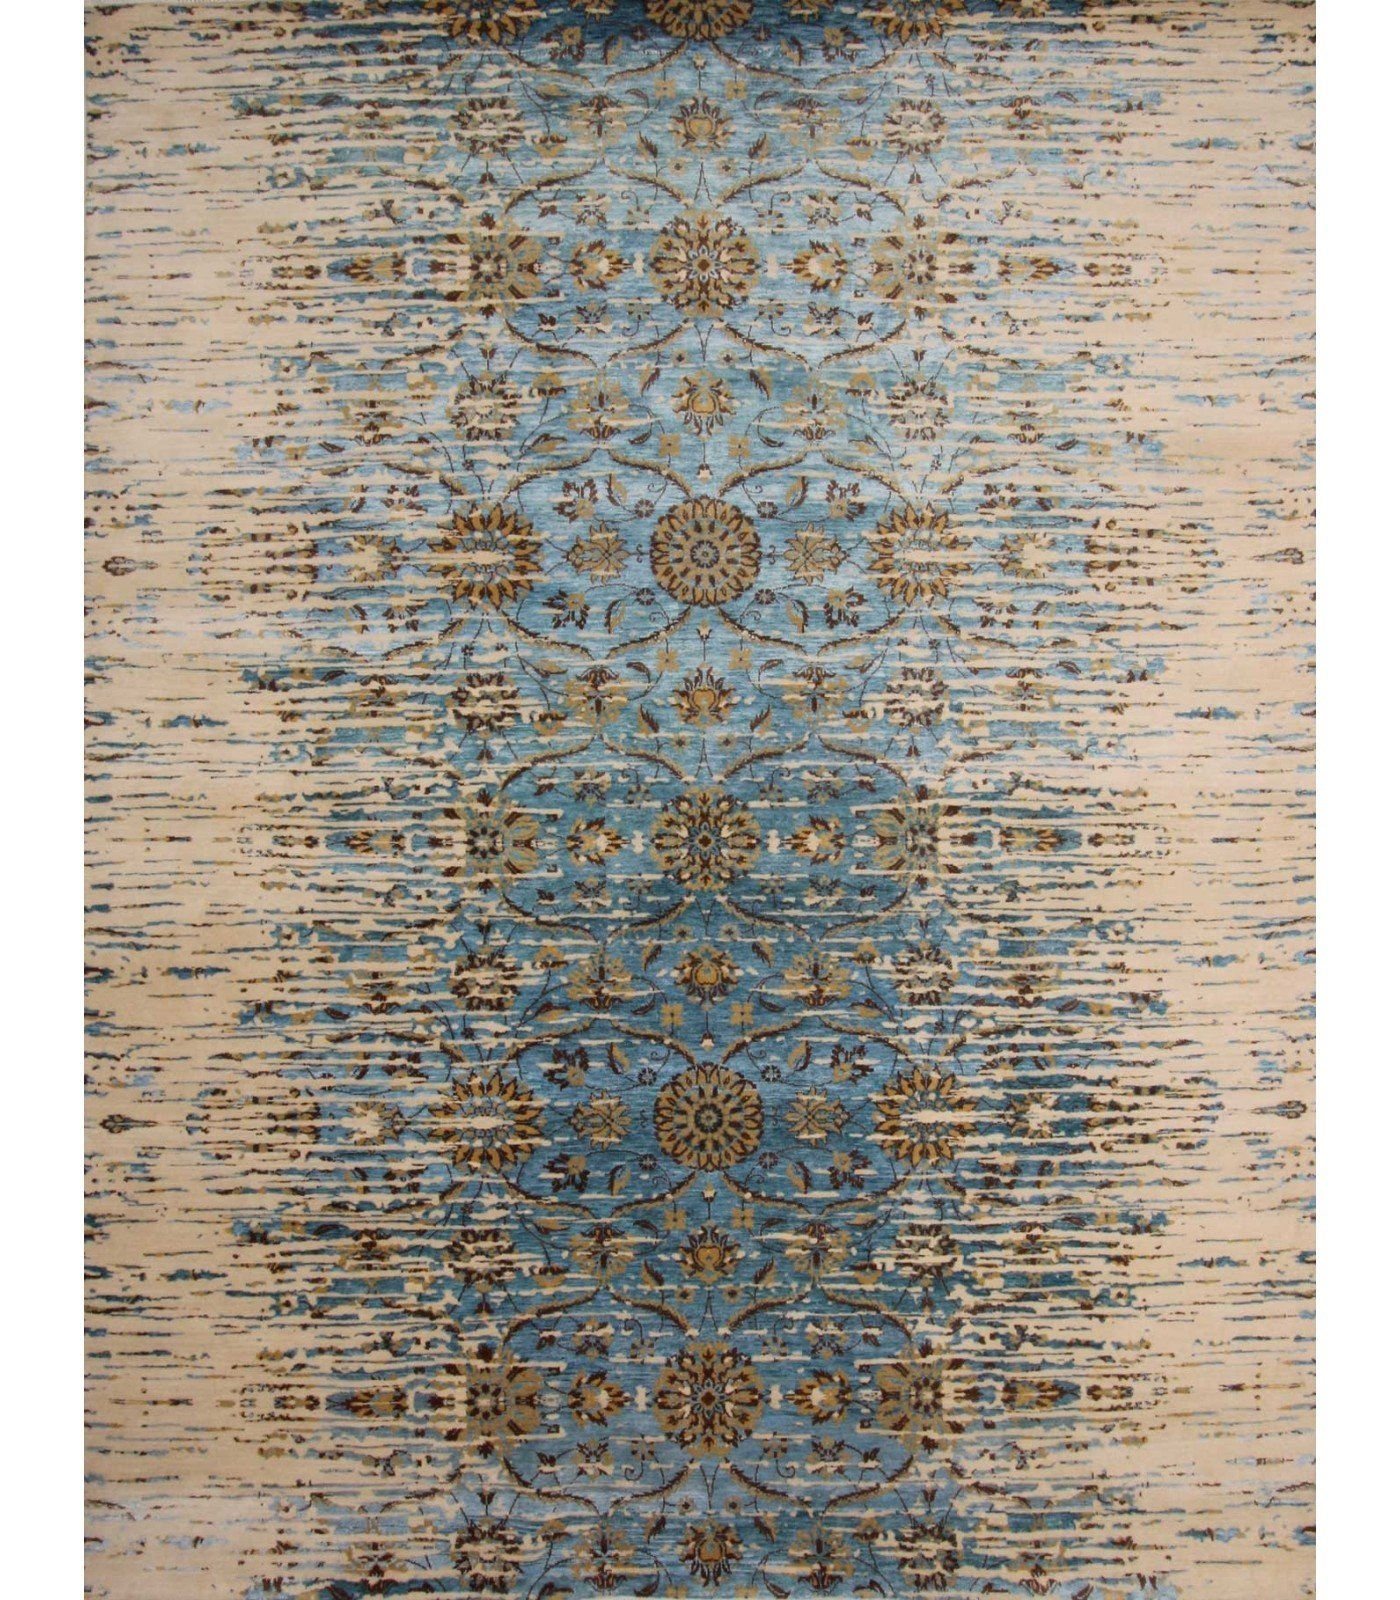 Contemporary Rugs Berkeley Ca Henry Gertmenian Rugs With Contemorary Rugs (View 7 of 15)